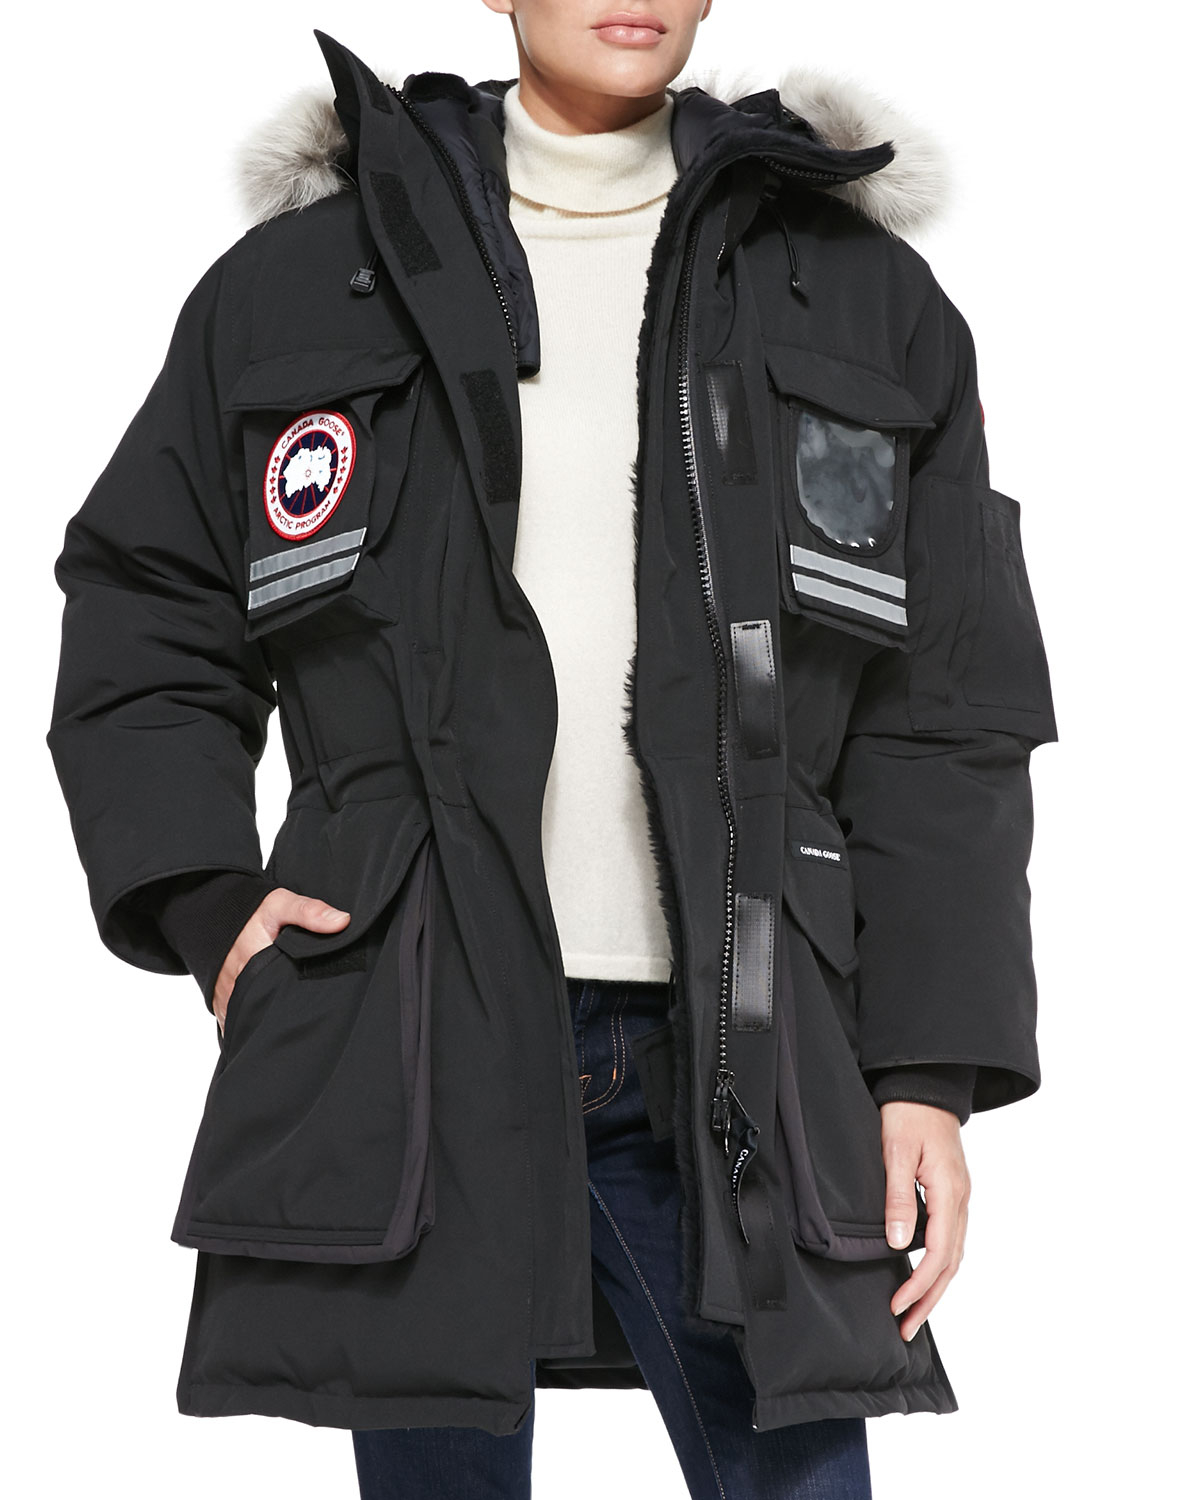 2cdf5c48bb51 ... Jacket With Fur-trimmed Hood Canada Goose kids outlet store - Canada  goose Snow Mantra Fur-hood Coat in Black ...